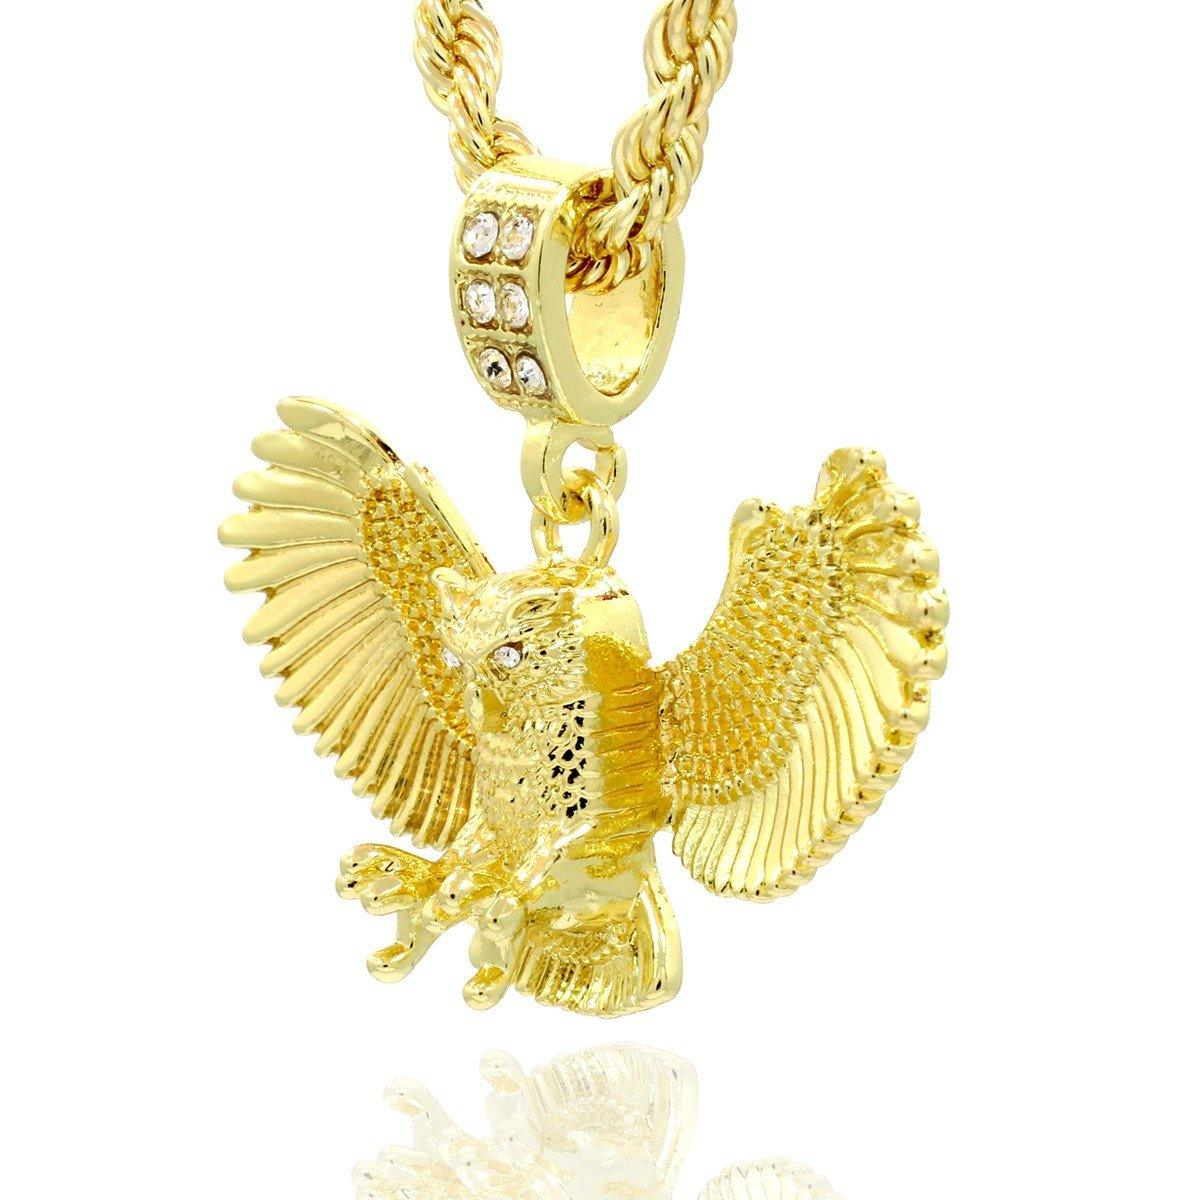 OWL PENDANT WITH GOLD ROPE CHAIN